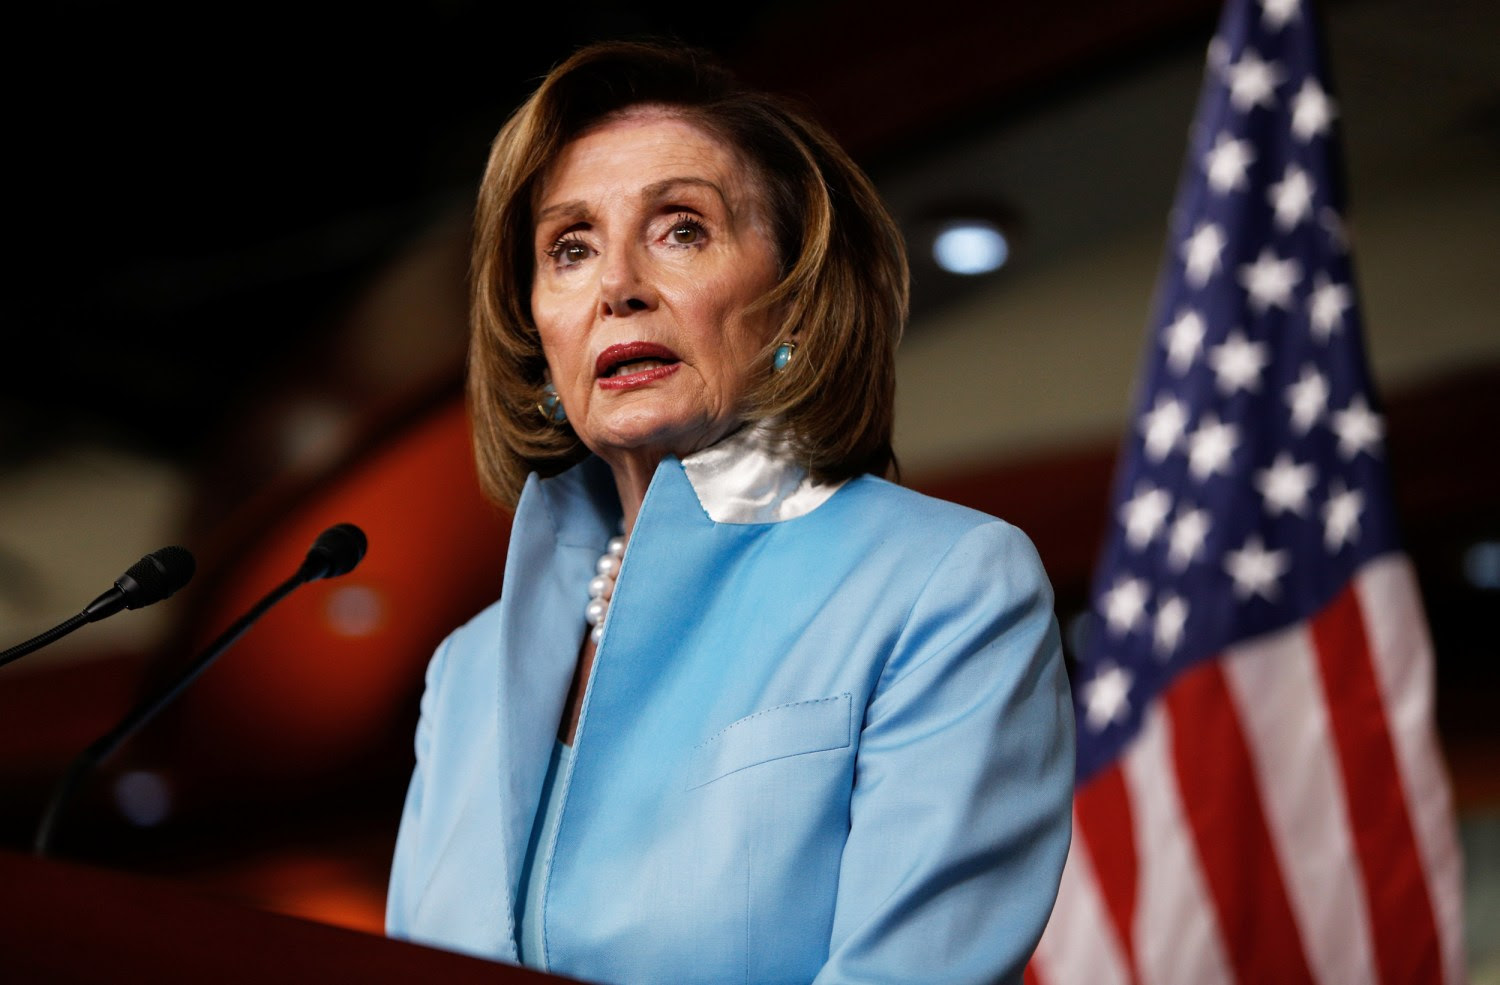 Why are several top Democrats suddenly turning on Nancy Pelosi?